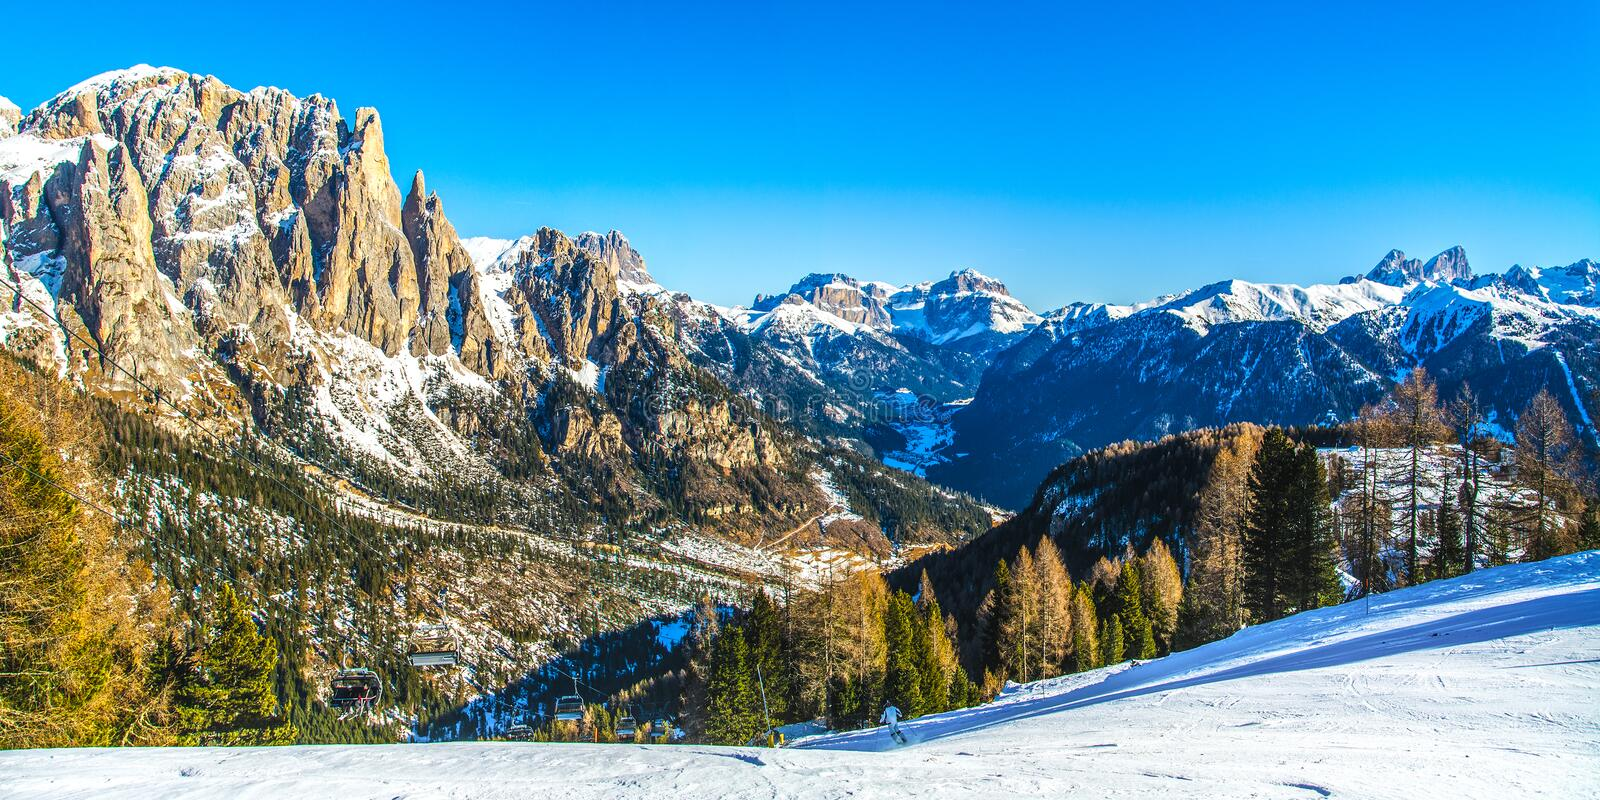 Dolomites mountains ski resort in winter, Italy royalty free stock photography